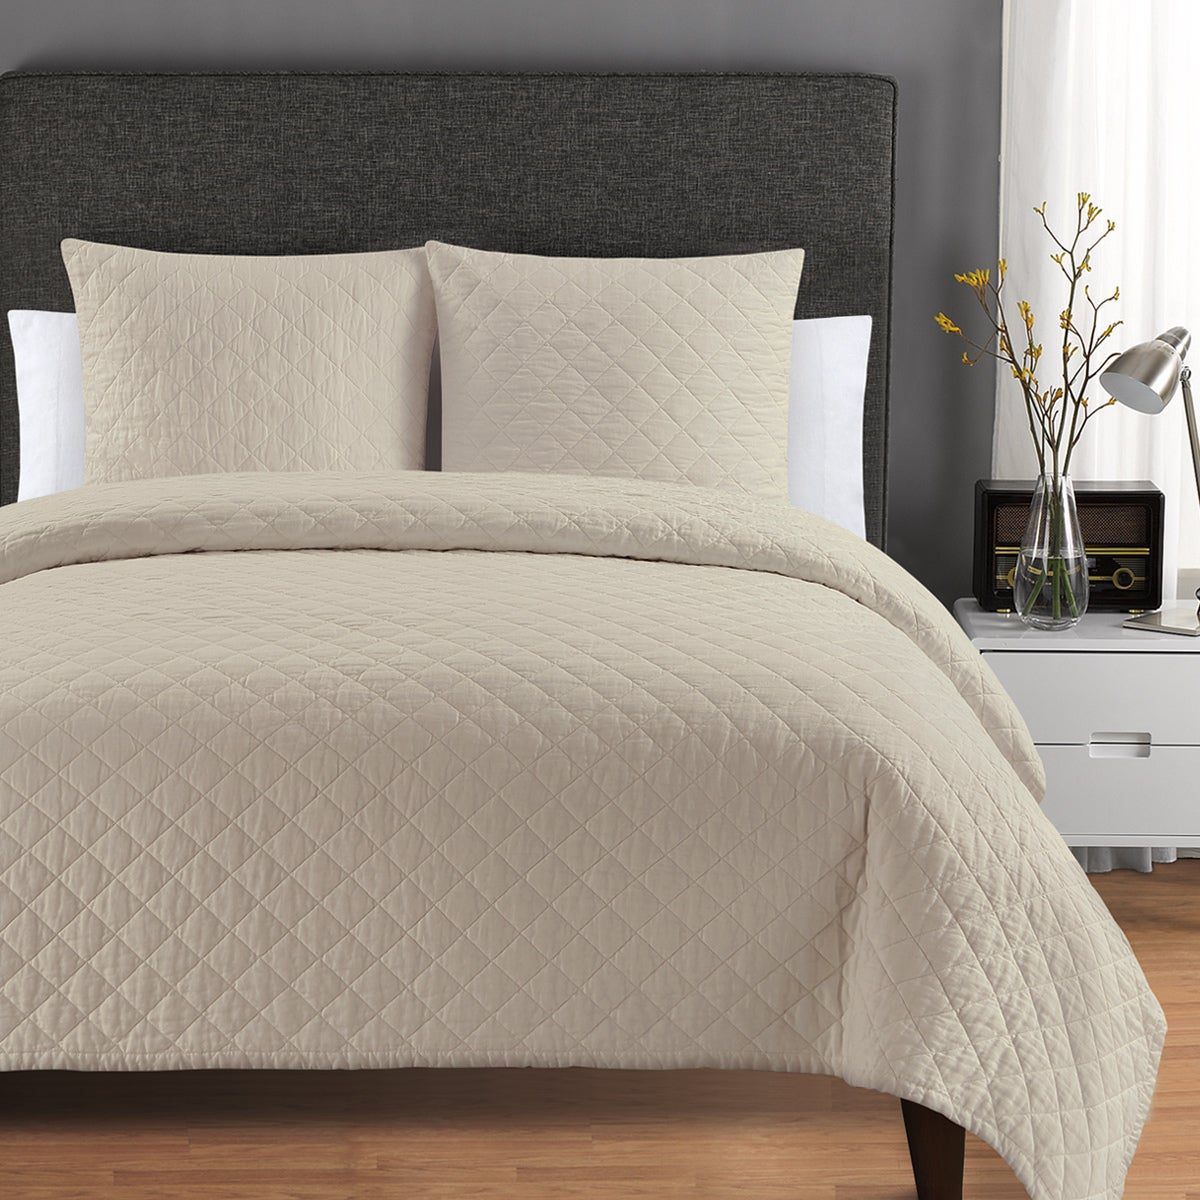 Quilted Washed Belgian Linen Coverlet   On Sale   Free Shipping Today    Overstock.com   20156627